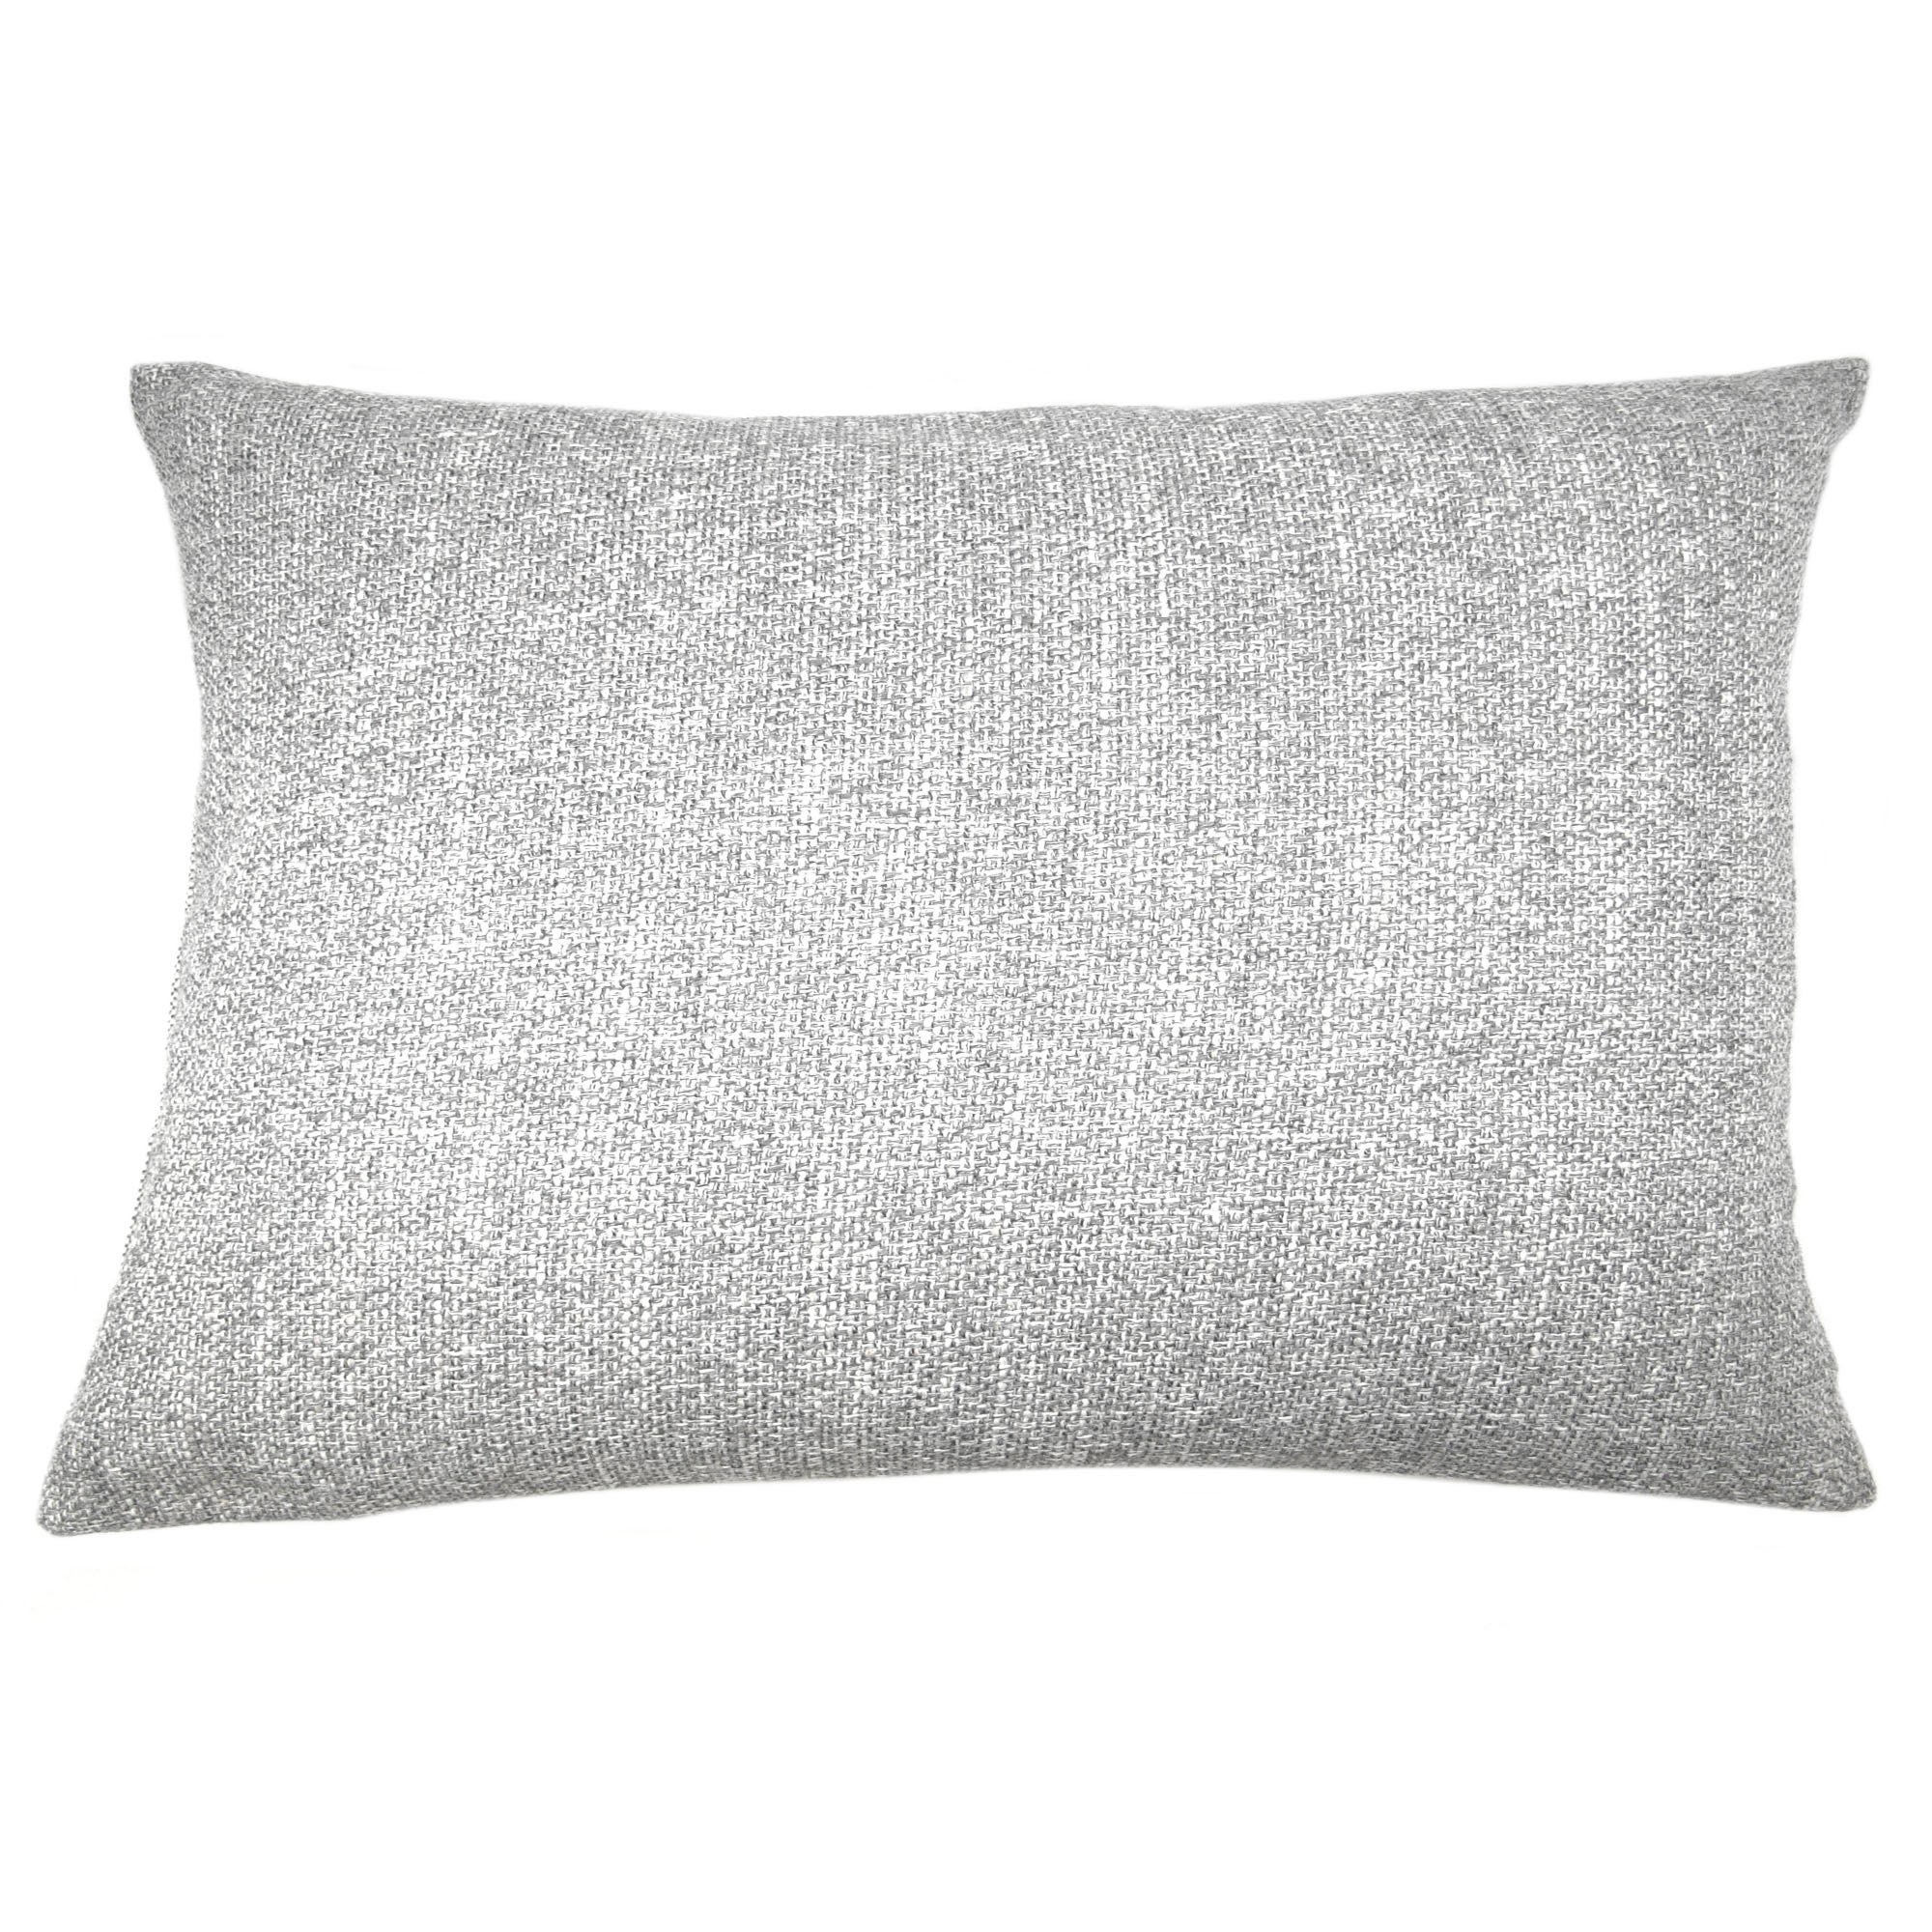 Photo of Carly rectangle cushion cover dove -grey-